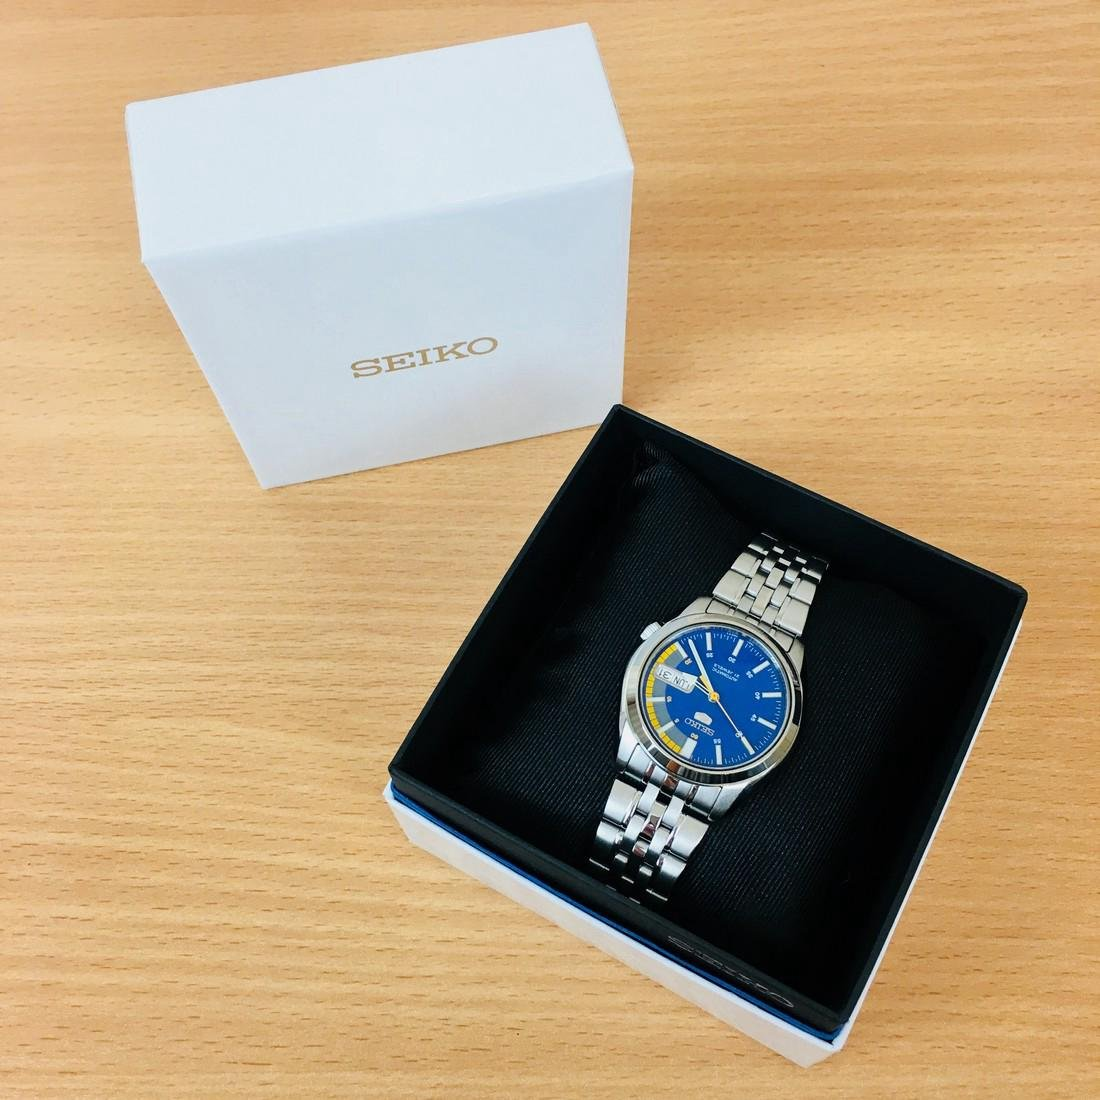 SEIKO 5 Men's Automatic Watch Brand New with Box - 8